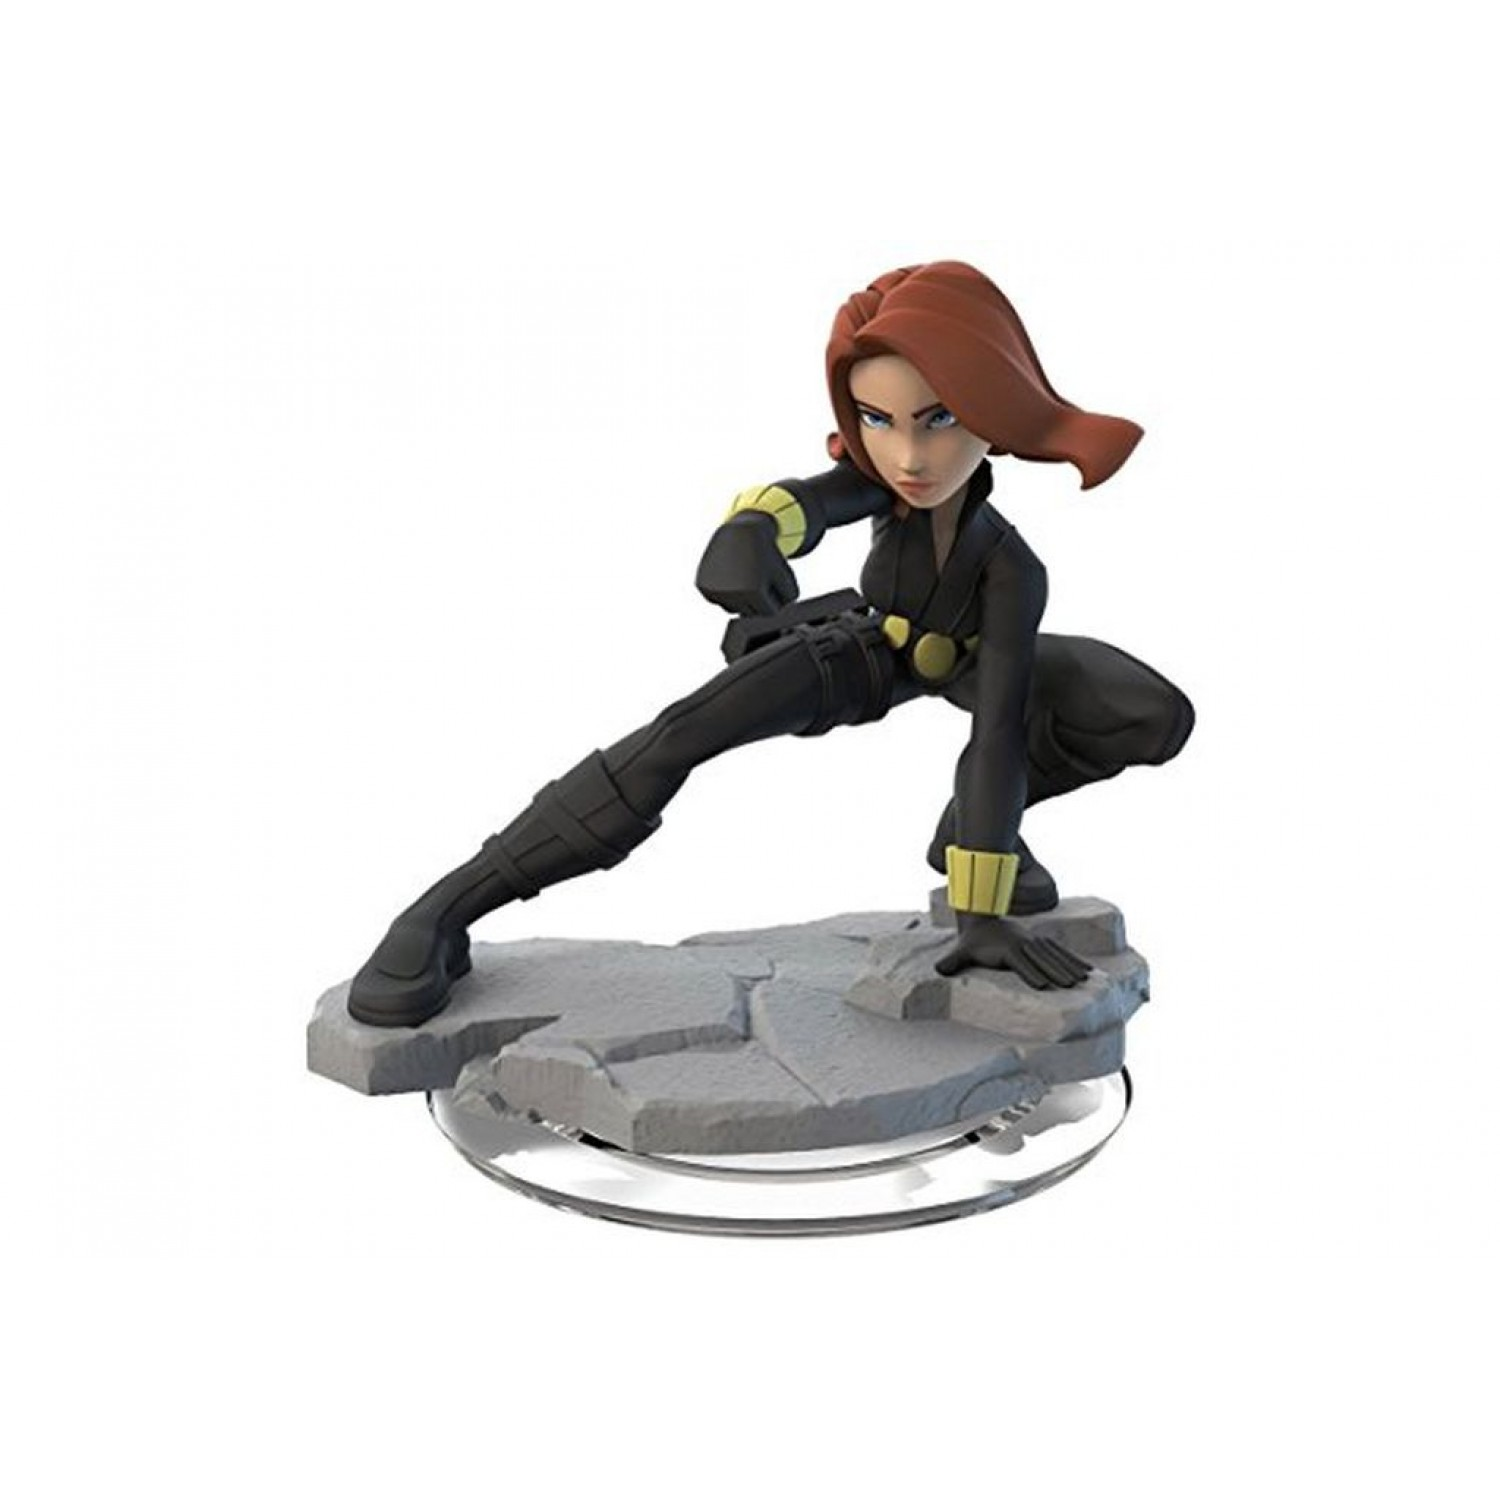 Disney Infinity 2.0 - Black Widow játékfigura